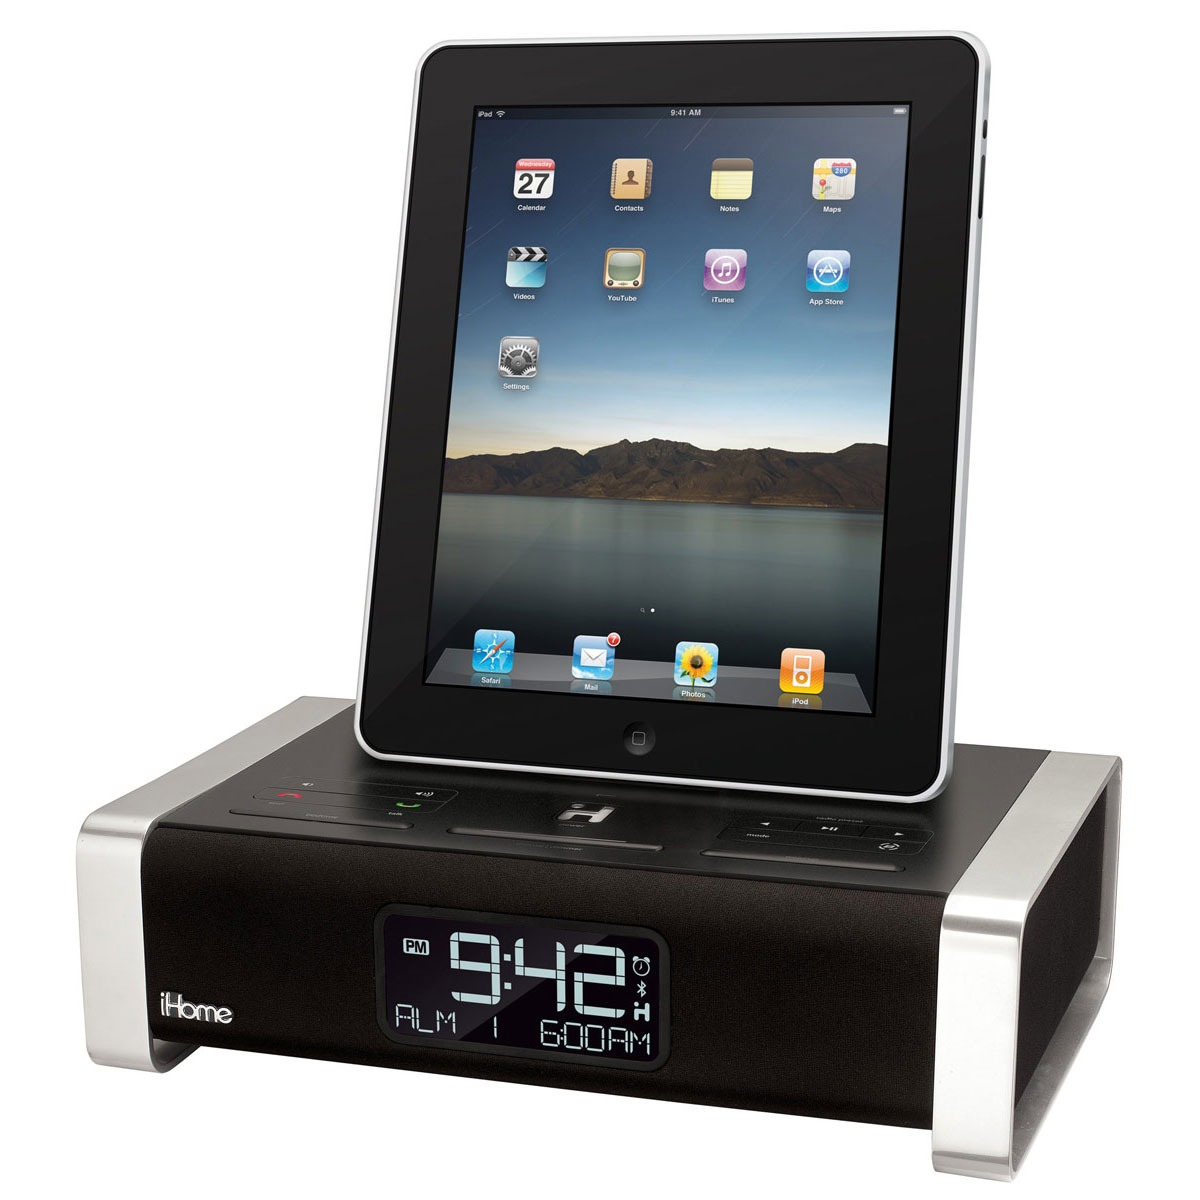 Dock & Enceinte Bluetooth iHome iA100 Radio-réveil Bluetooth pour iPad/iPhone/iPod